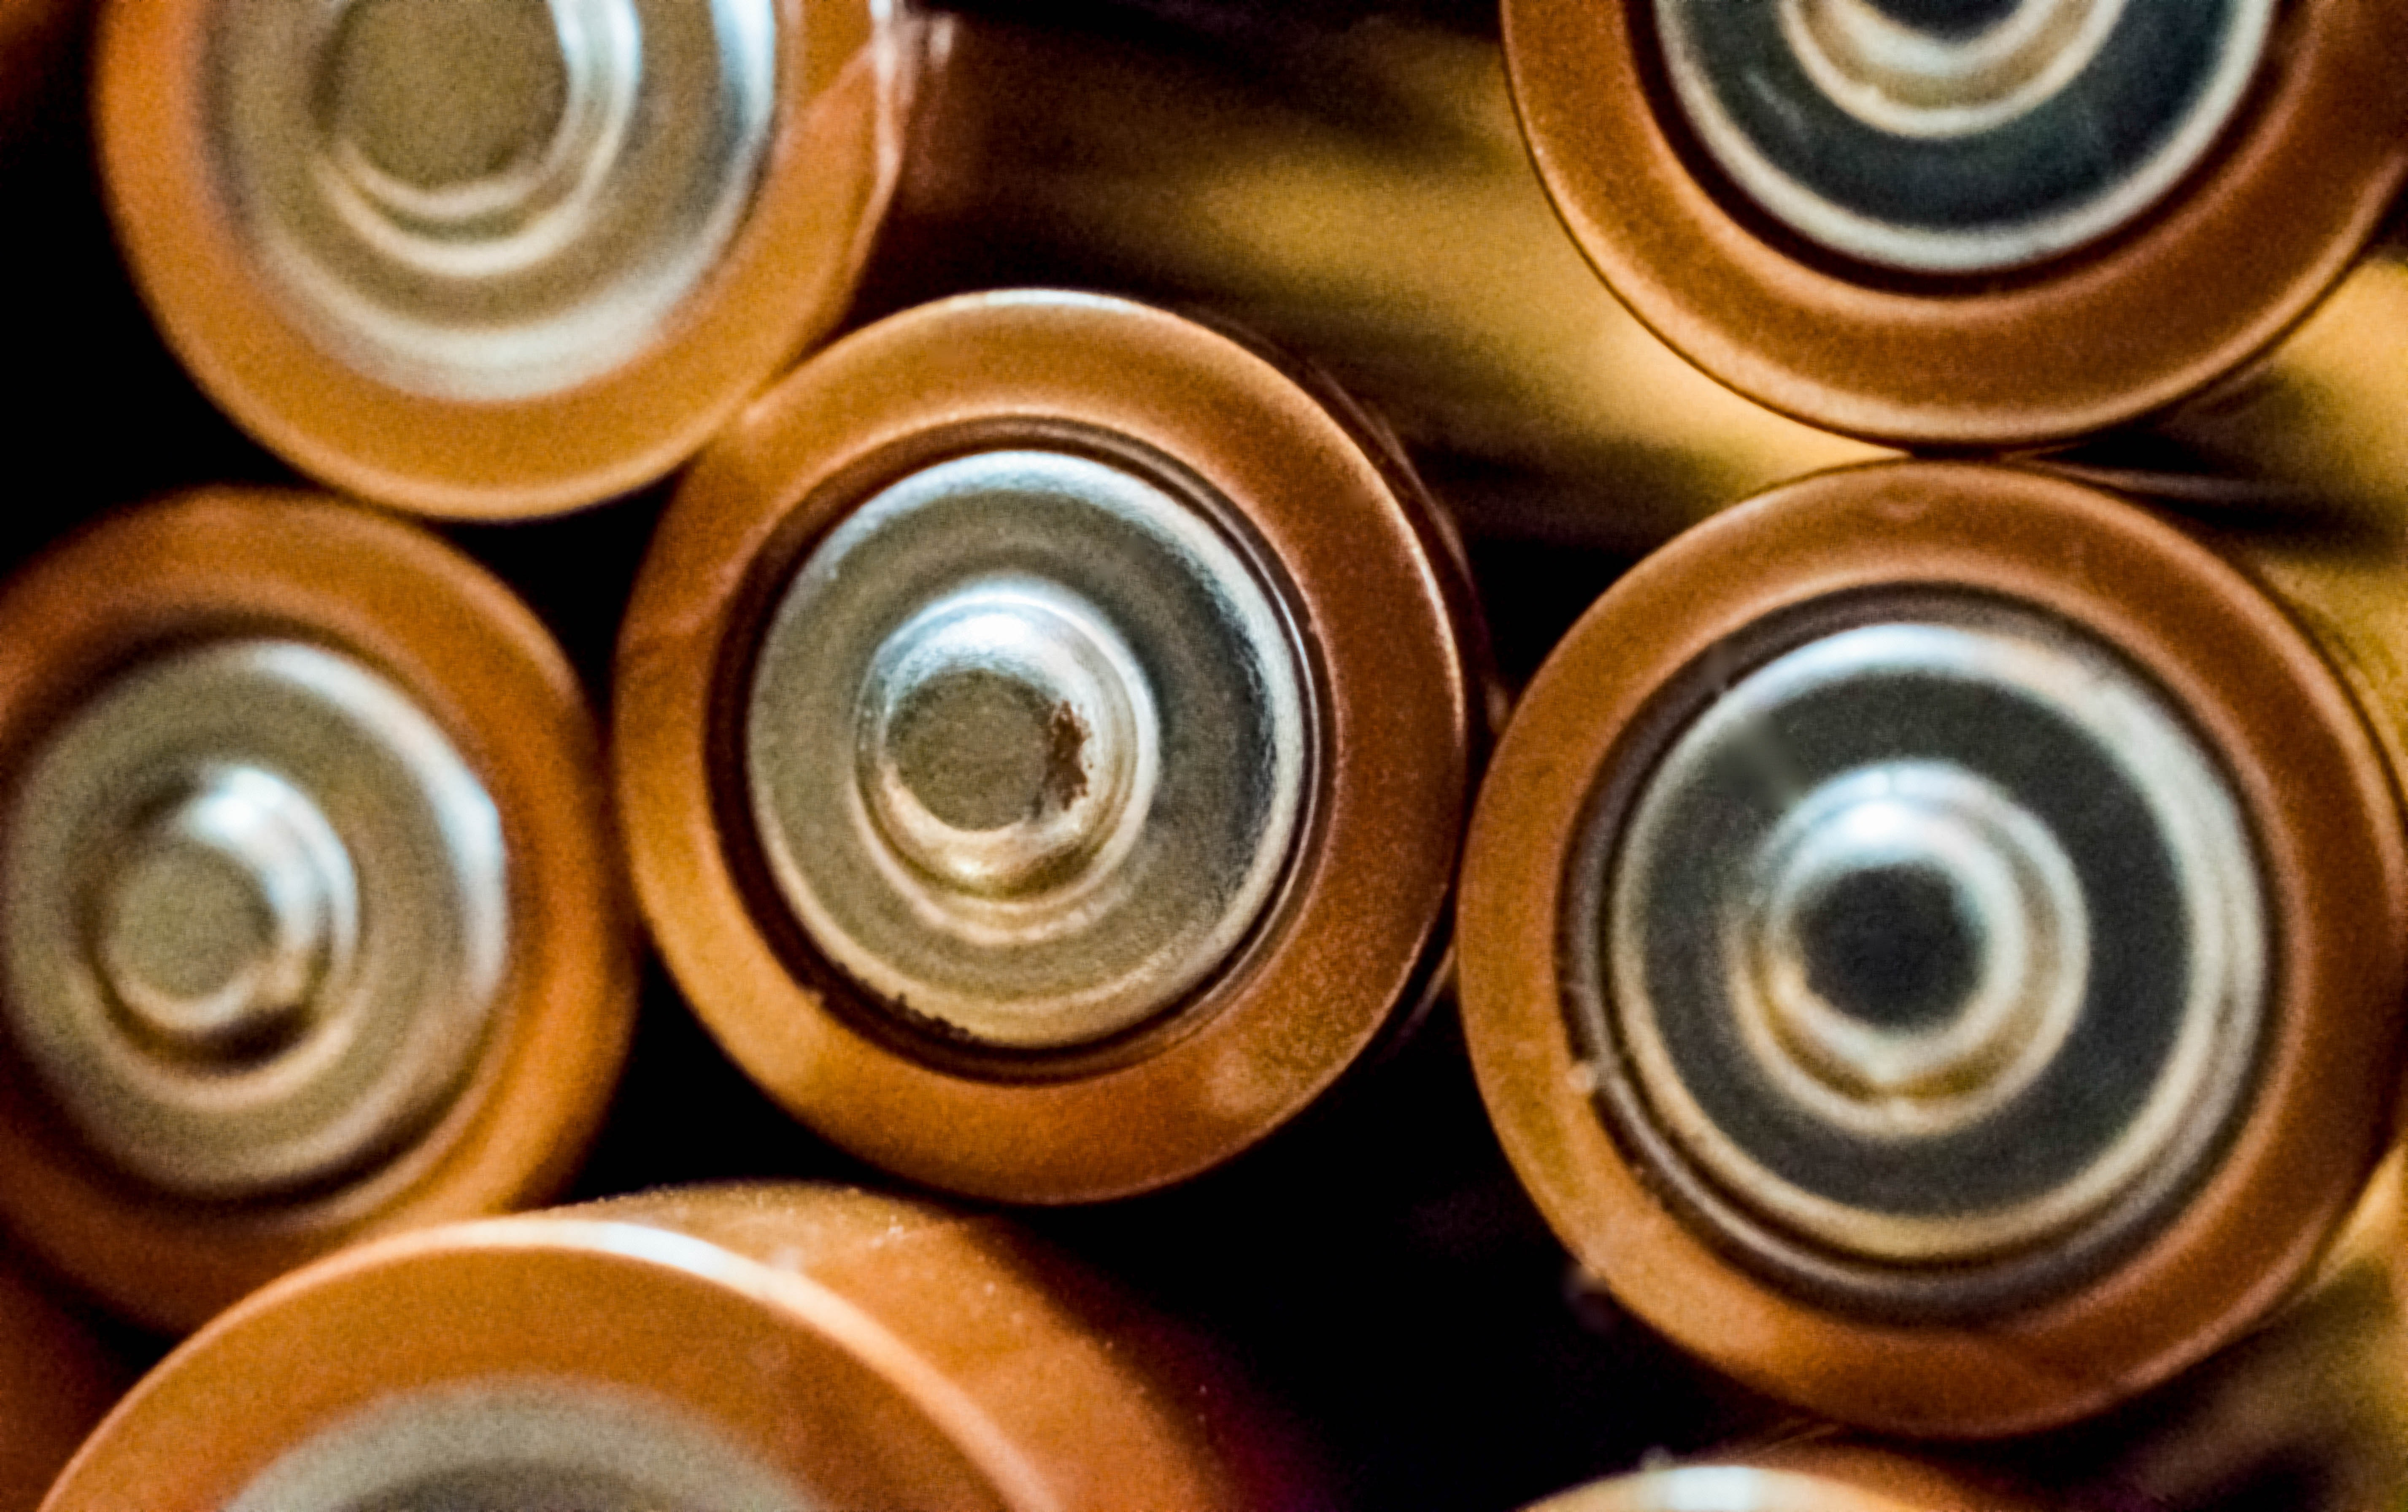 2batteries-blur-brass-698485.jpg